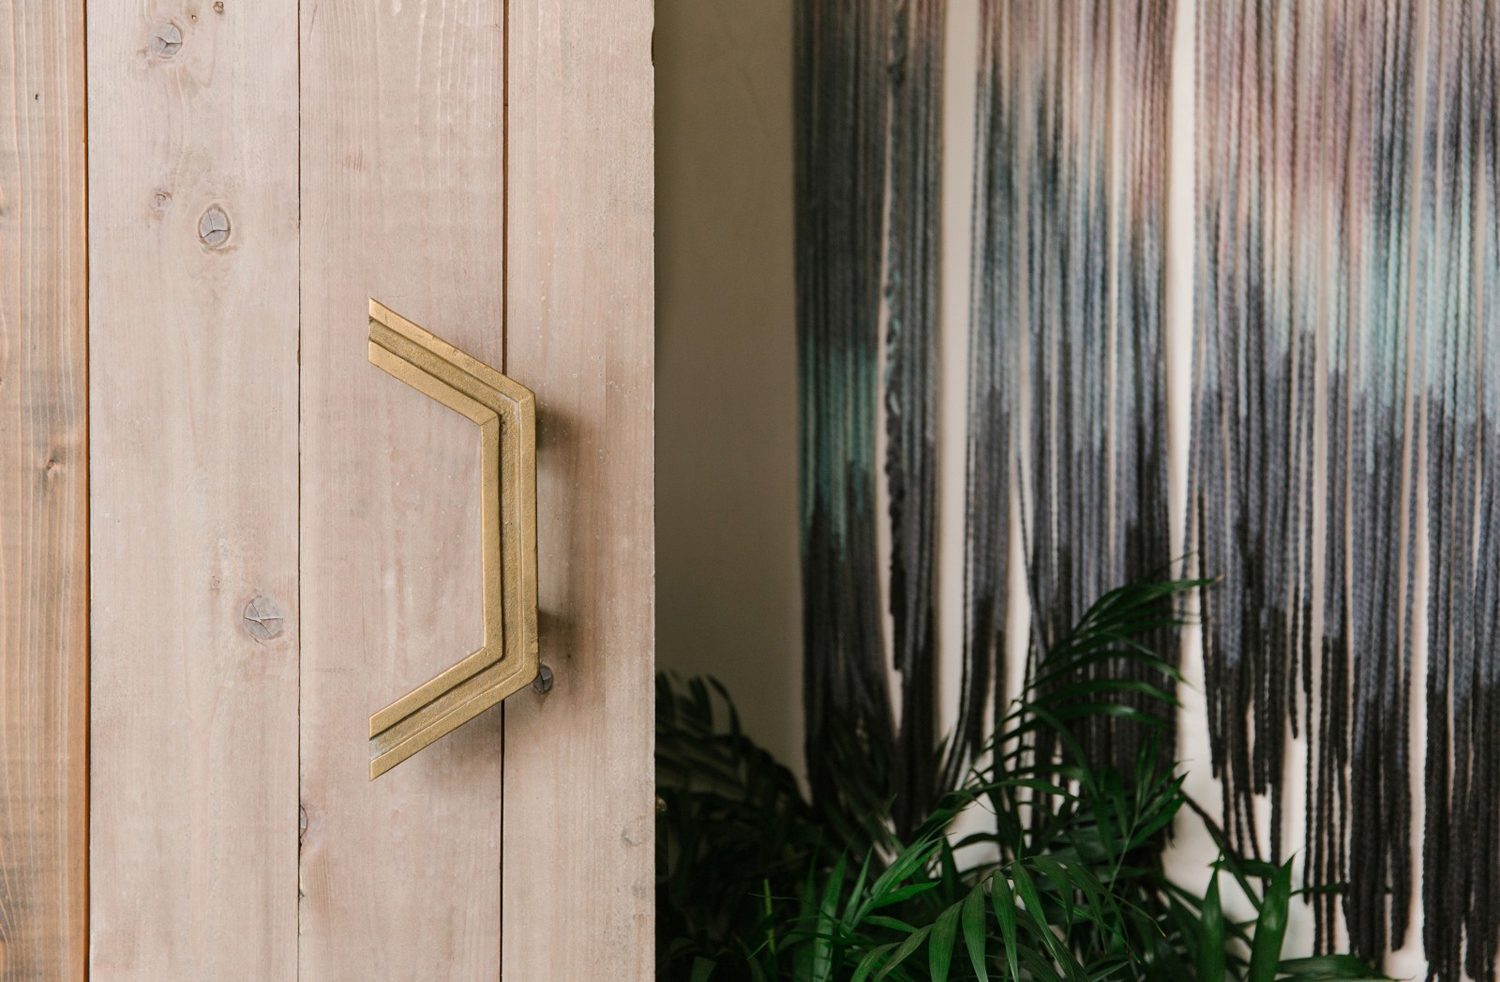 Brand identity and interior details for French inspired Mexican restaurant Madrina designed by Mast